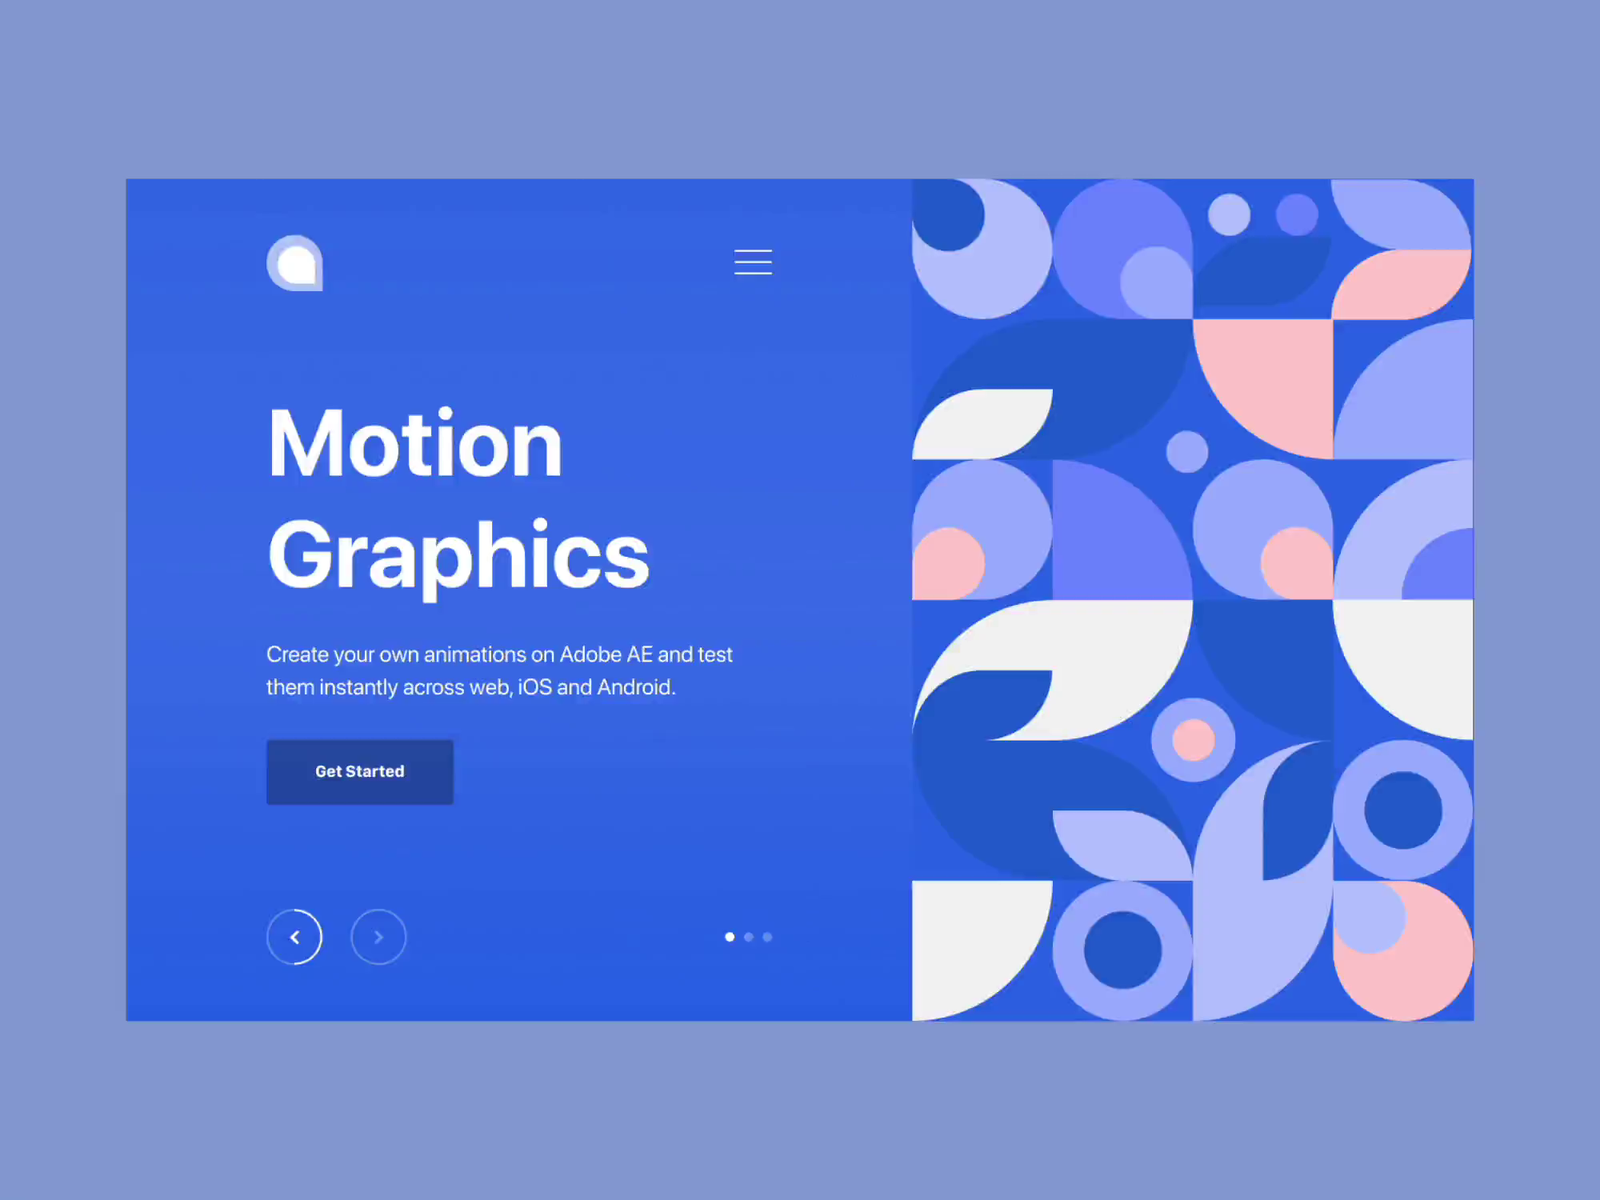 Daily Lottie Animation by SeeRgb on Dribbble